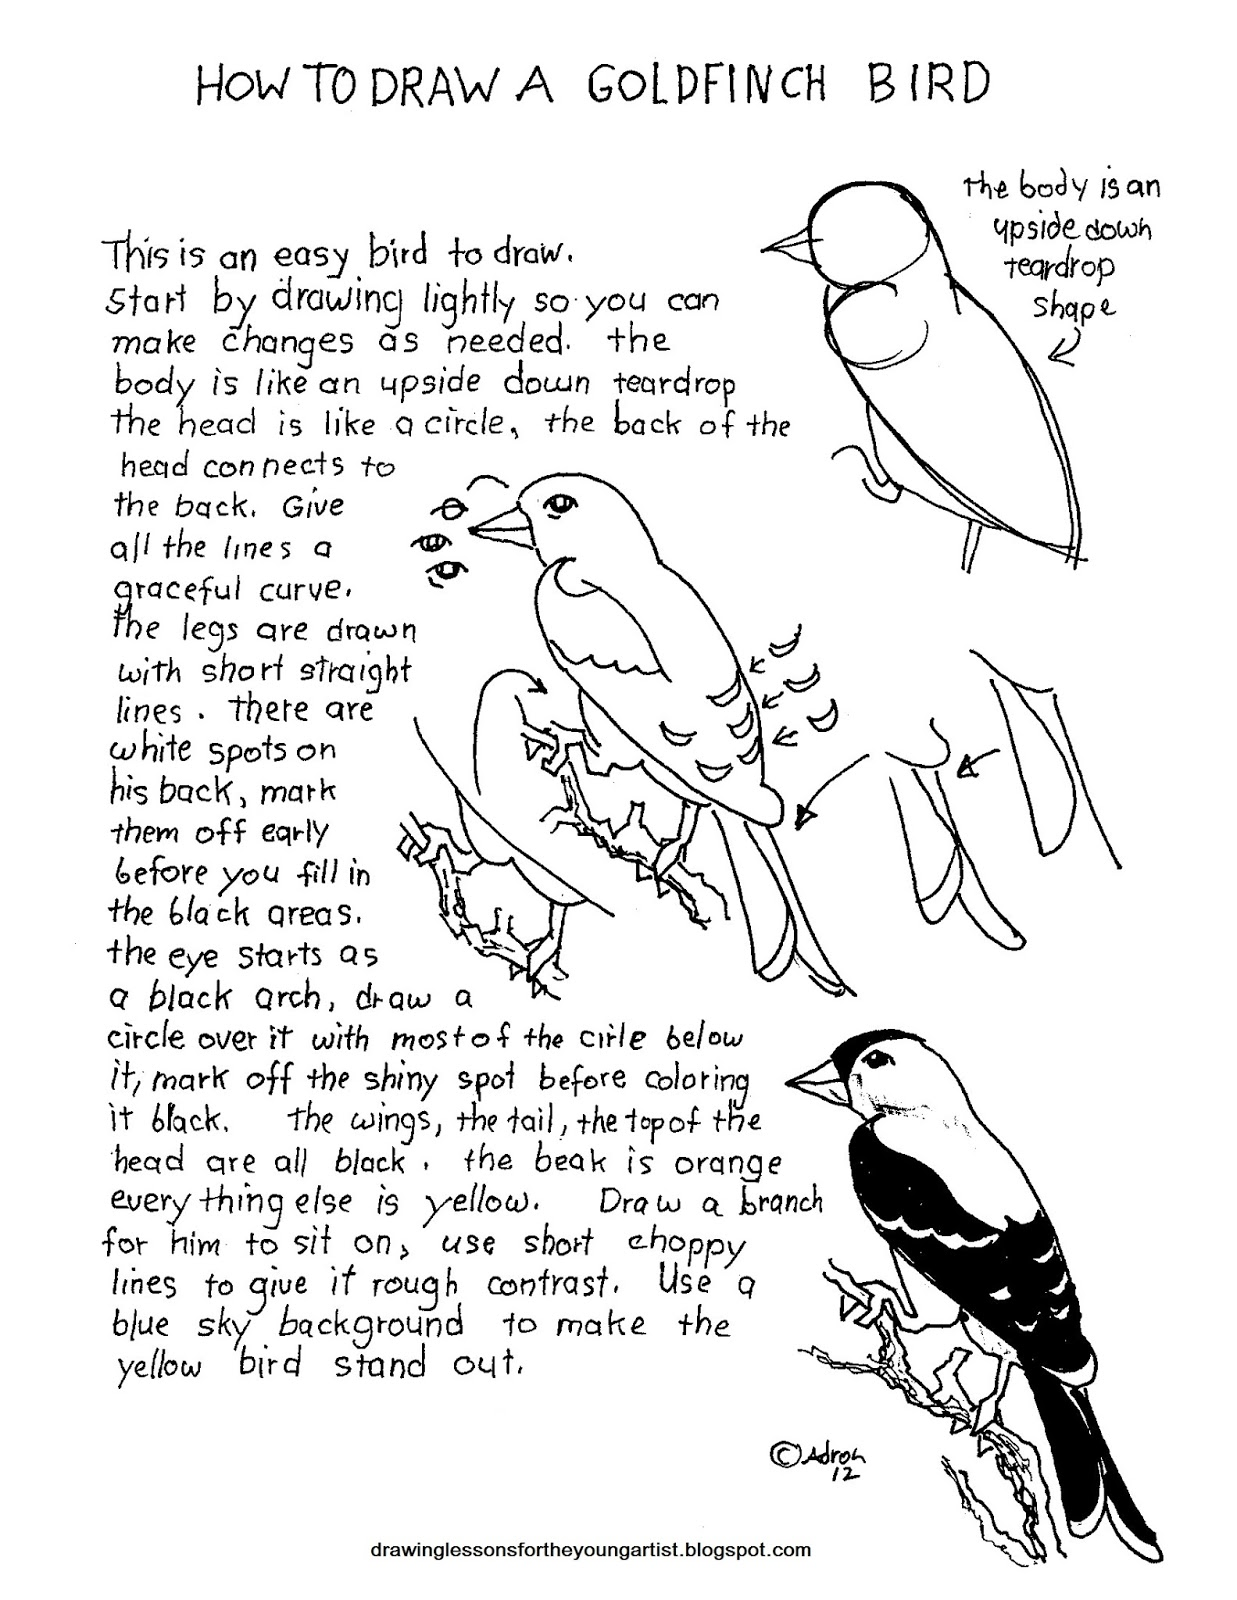 How To Draw Worksheets For The Young Artist: November 2012